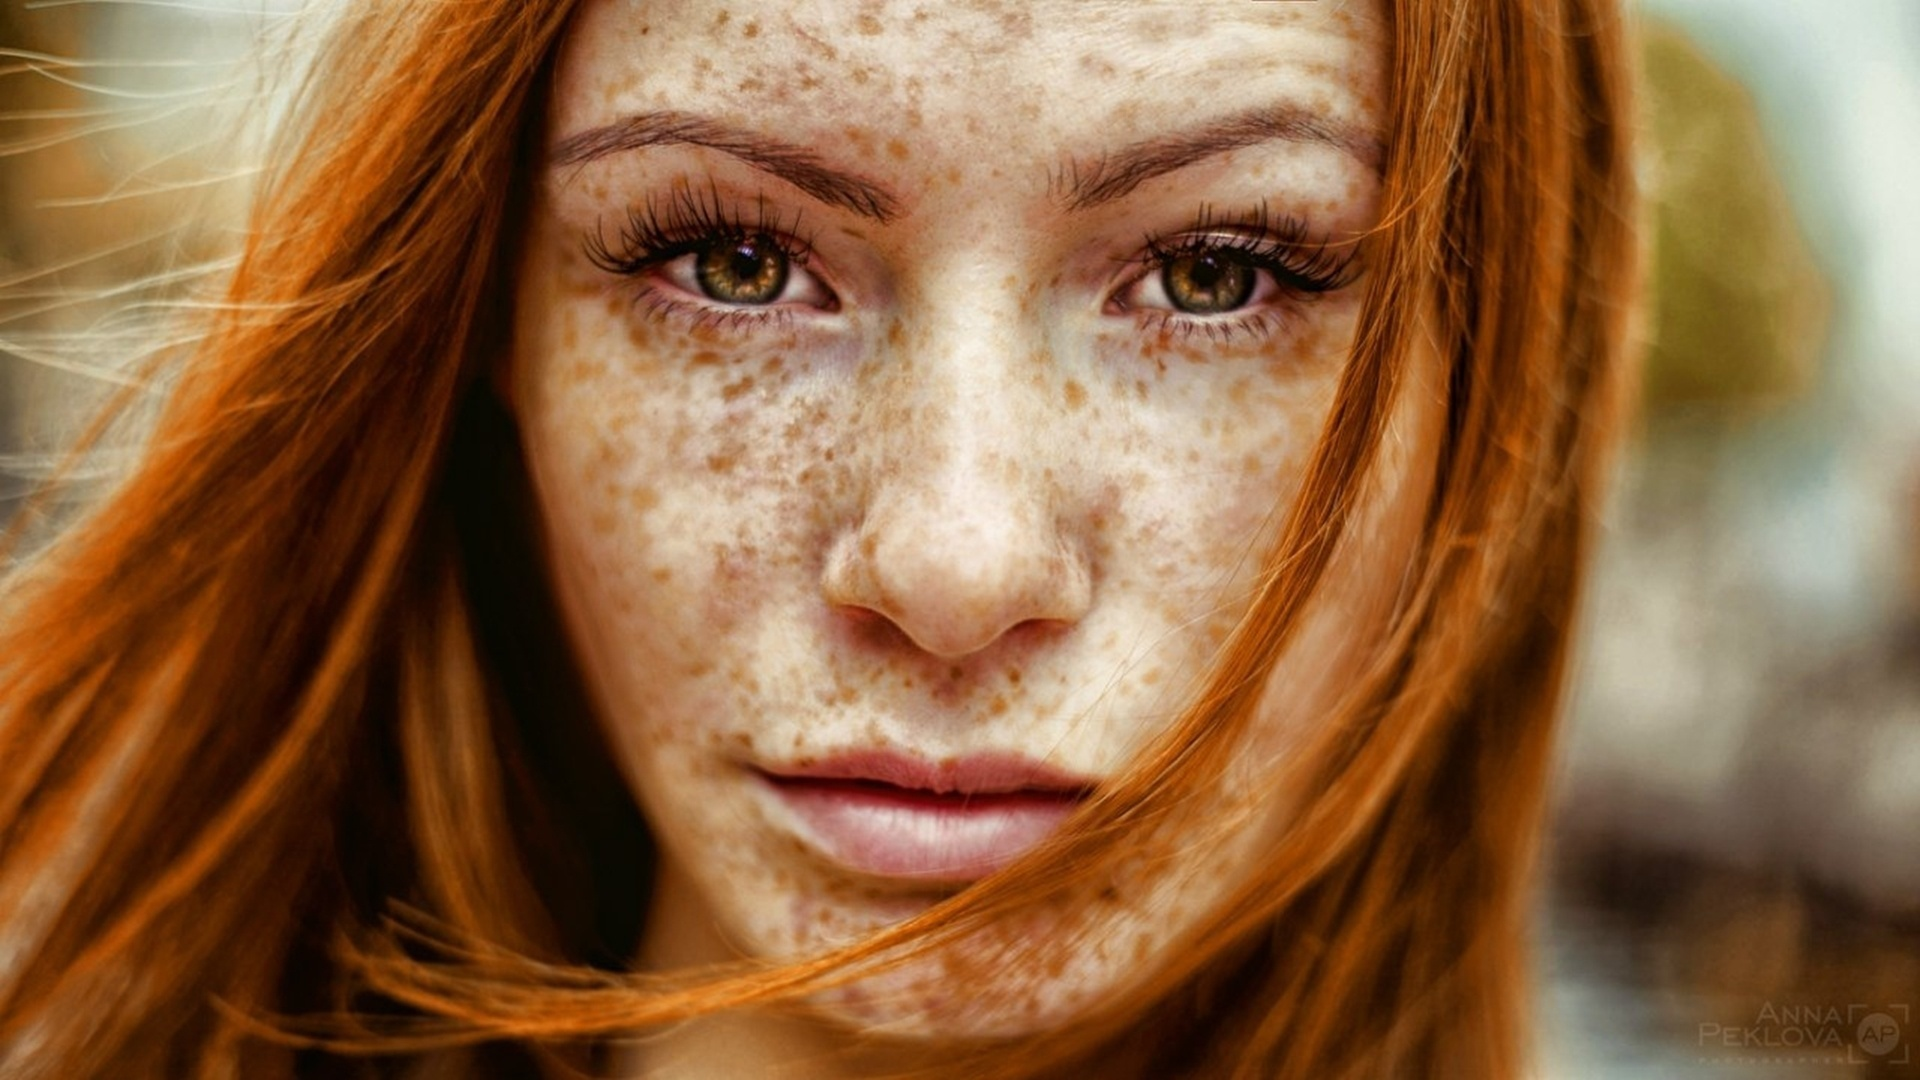 original wallpaper download: Freckled girl - 1920x1080